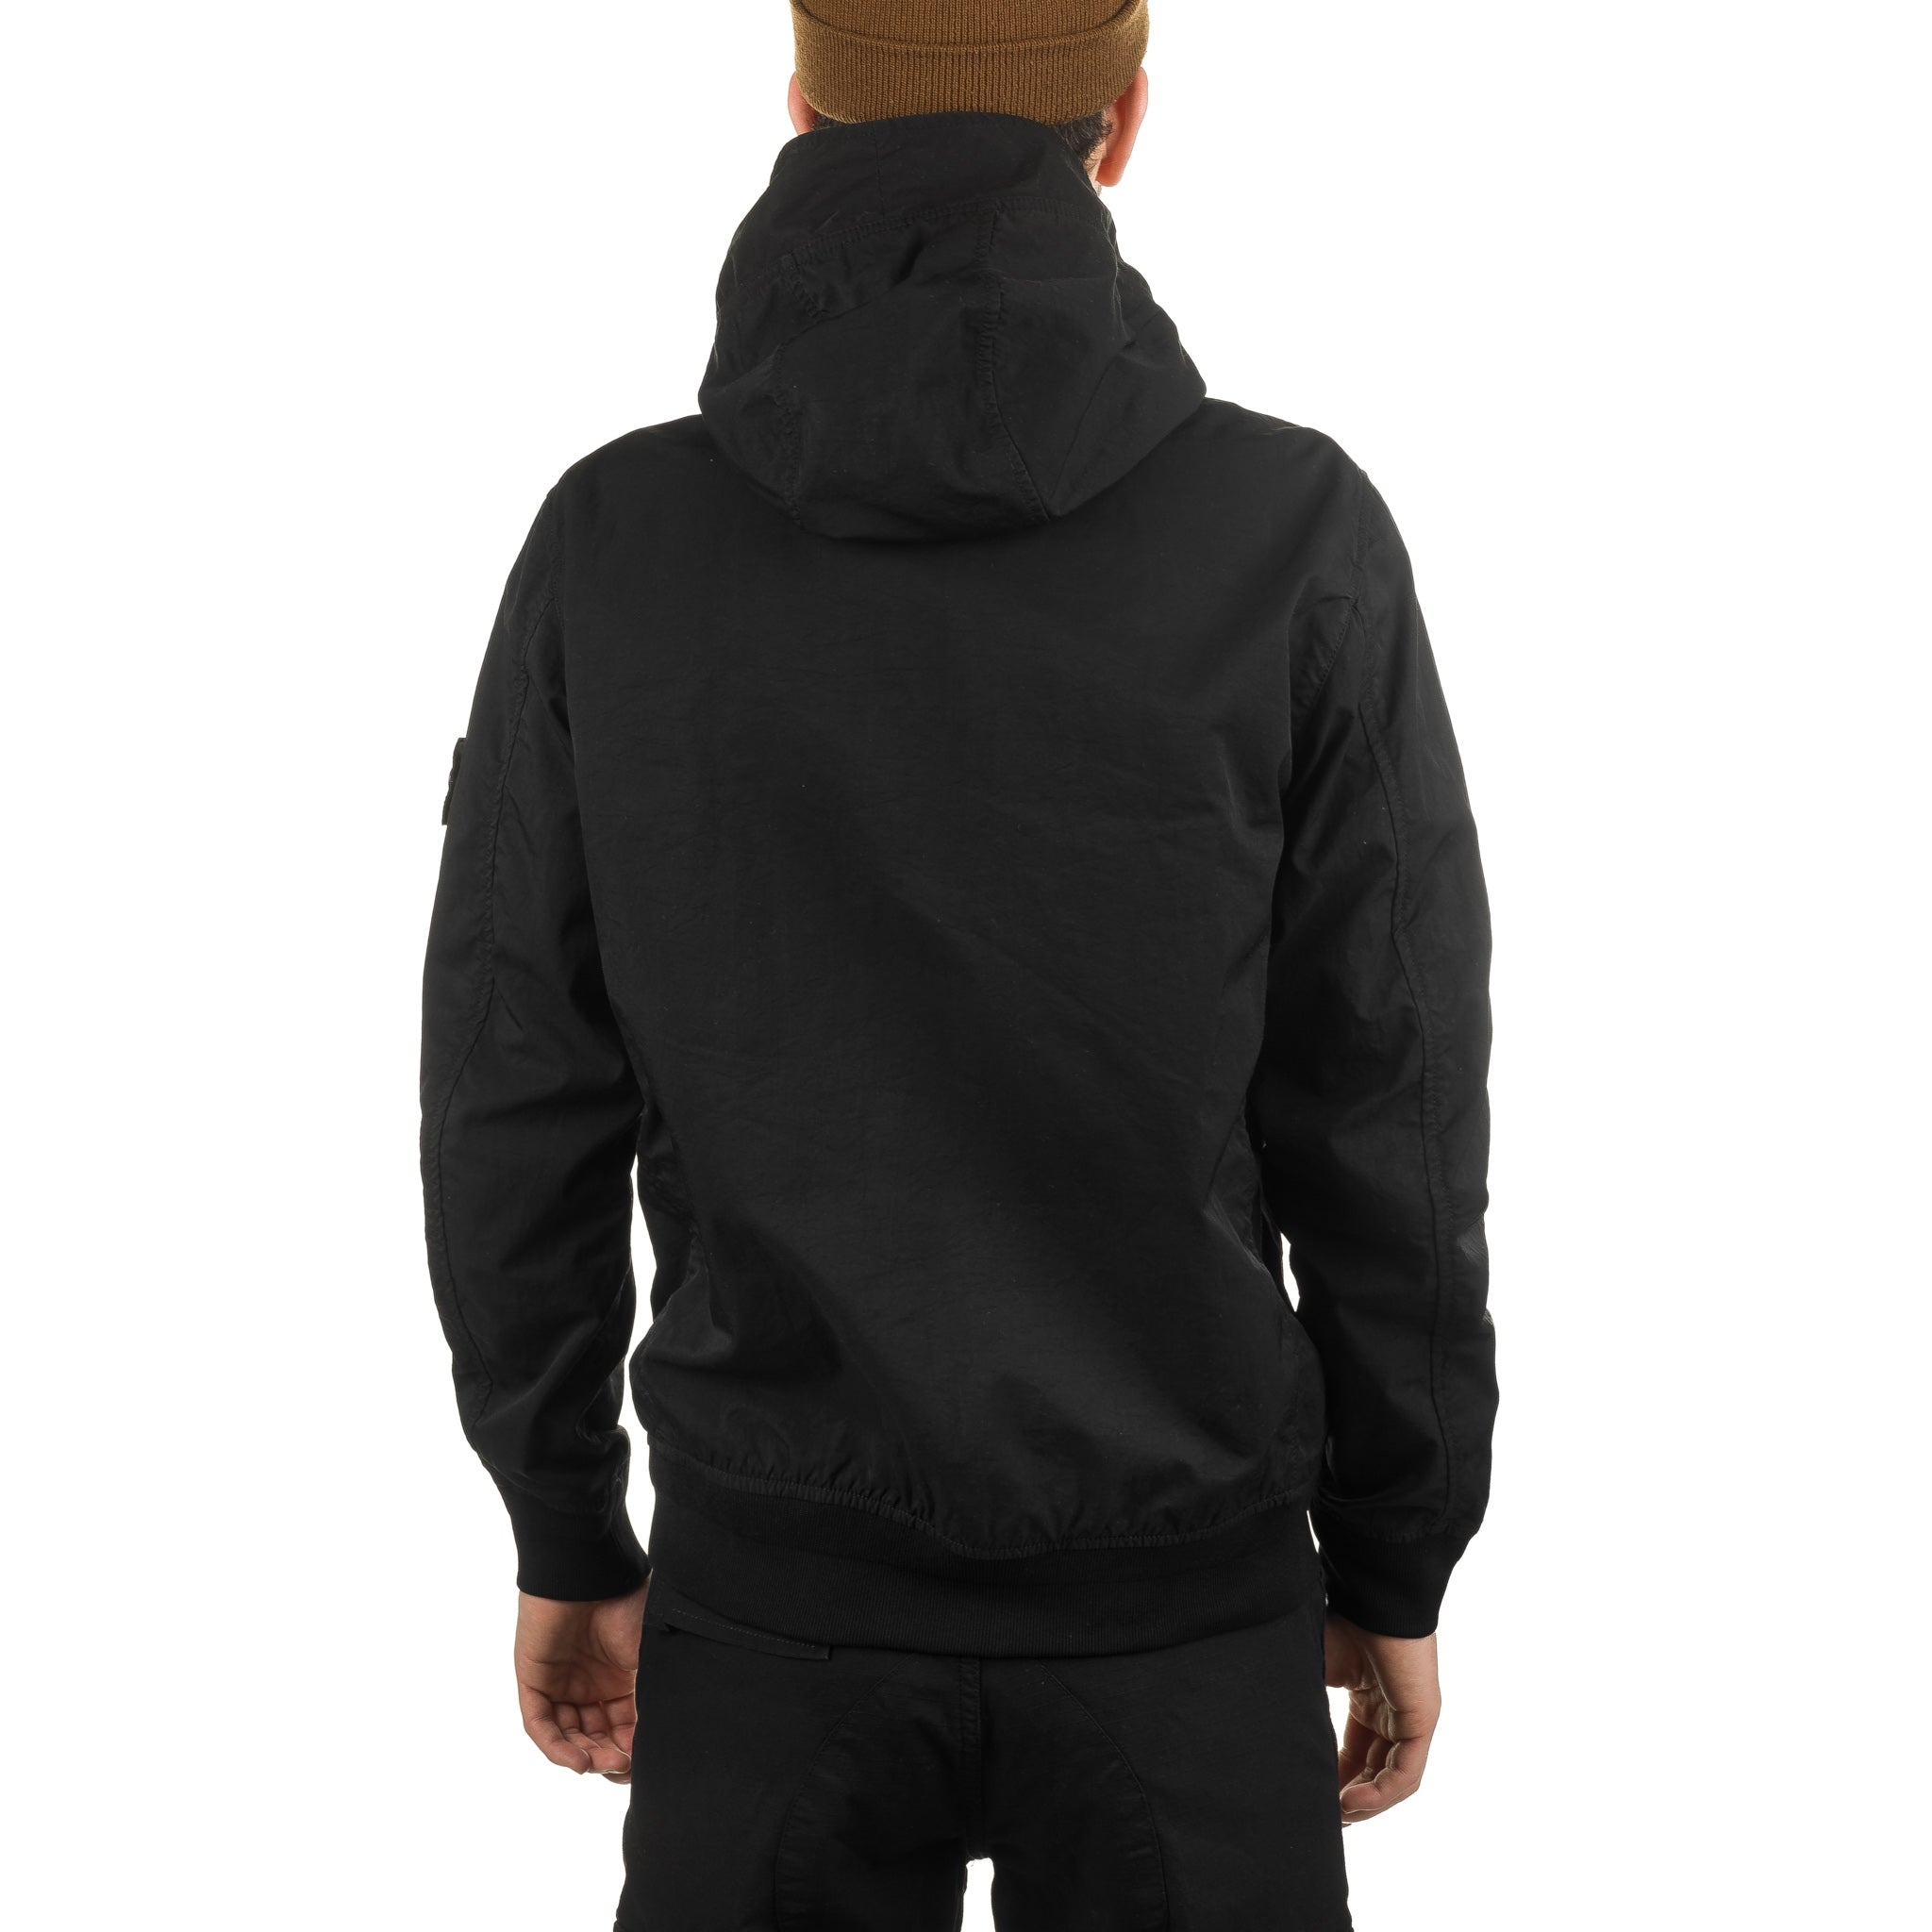 Nylon Twill-TC Zip-Up Jacket 721540426 Black